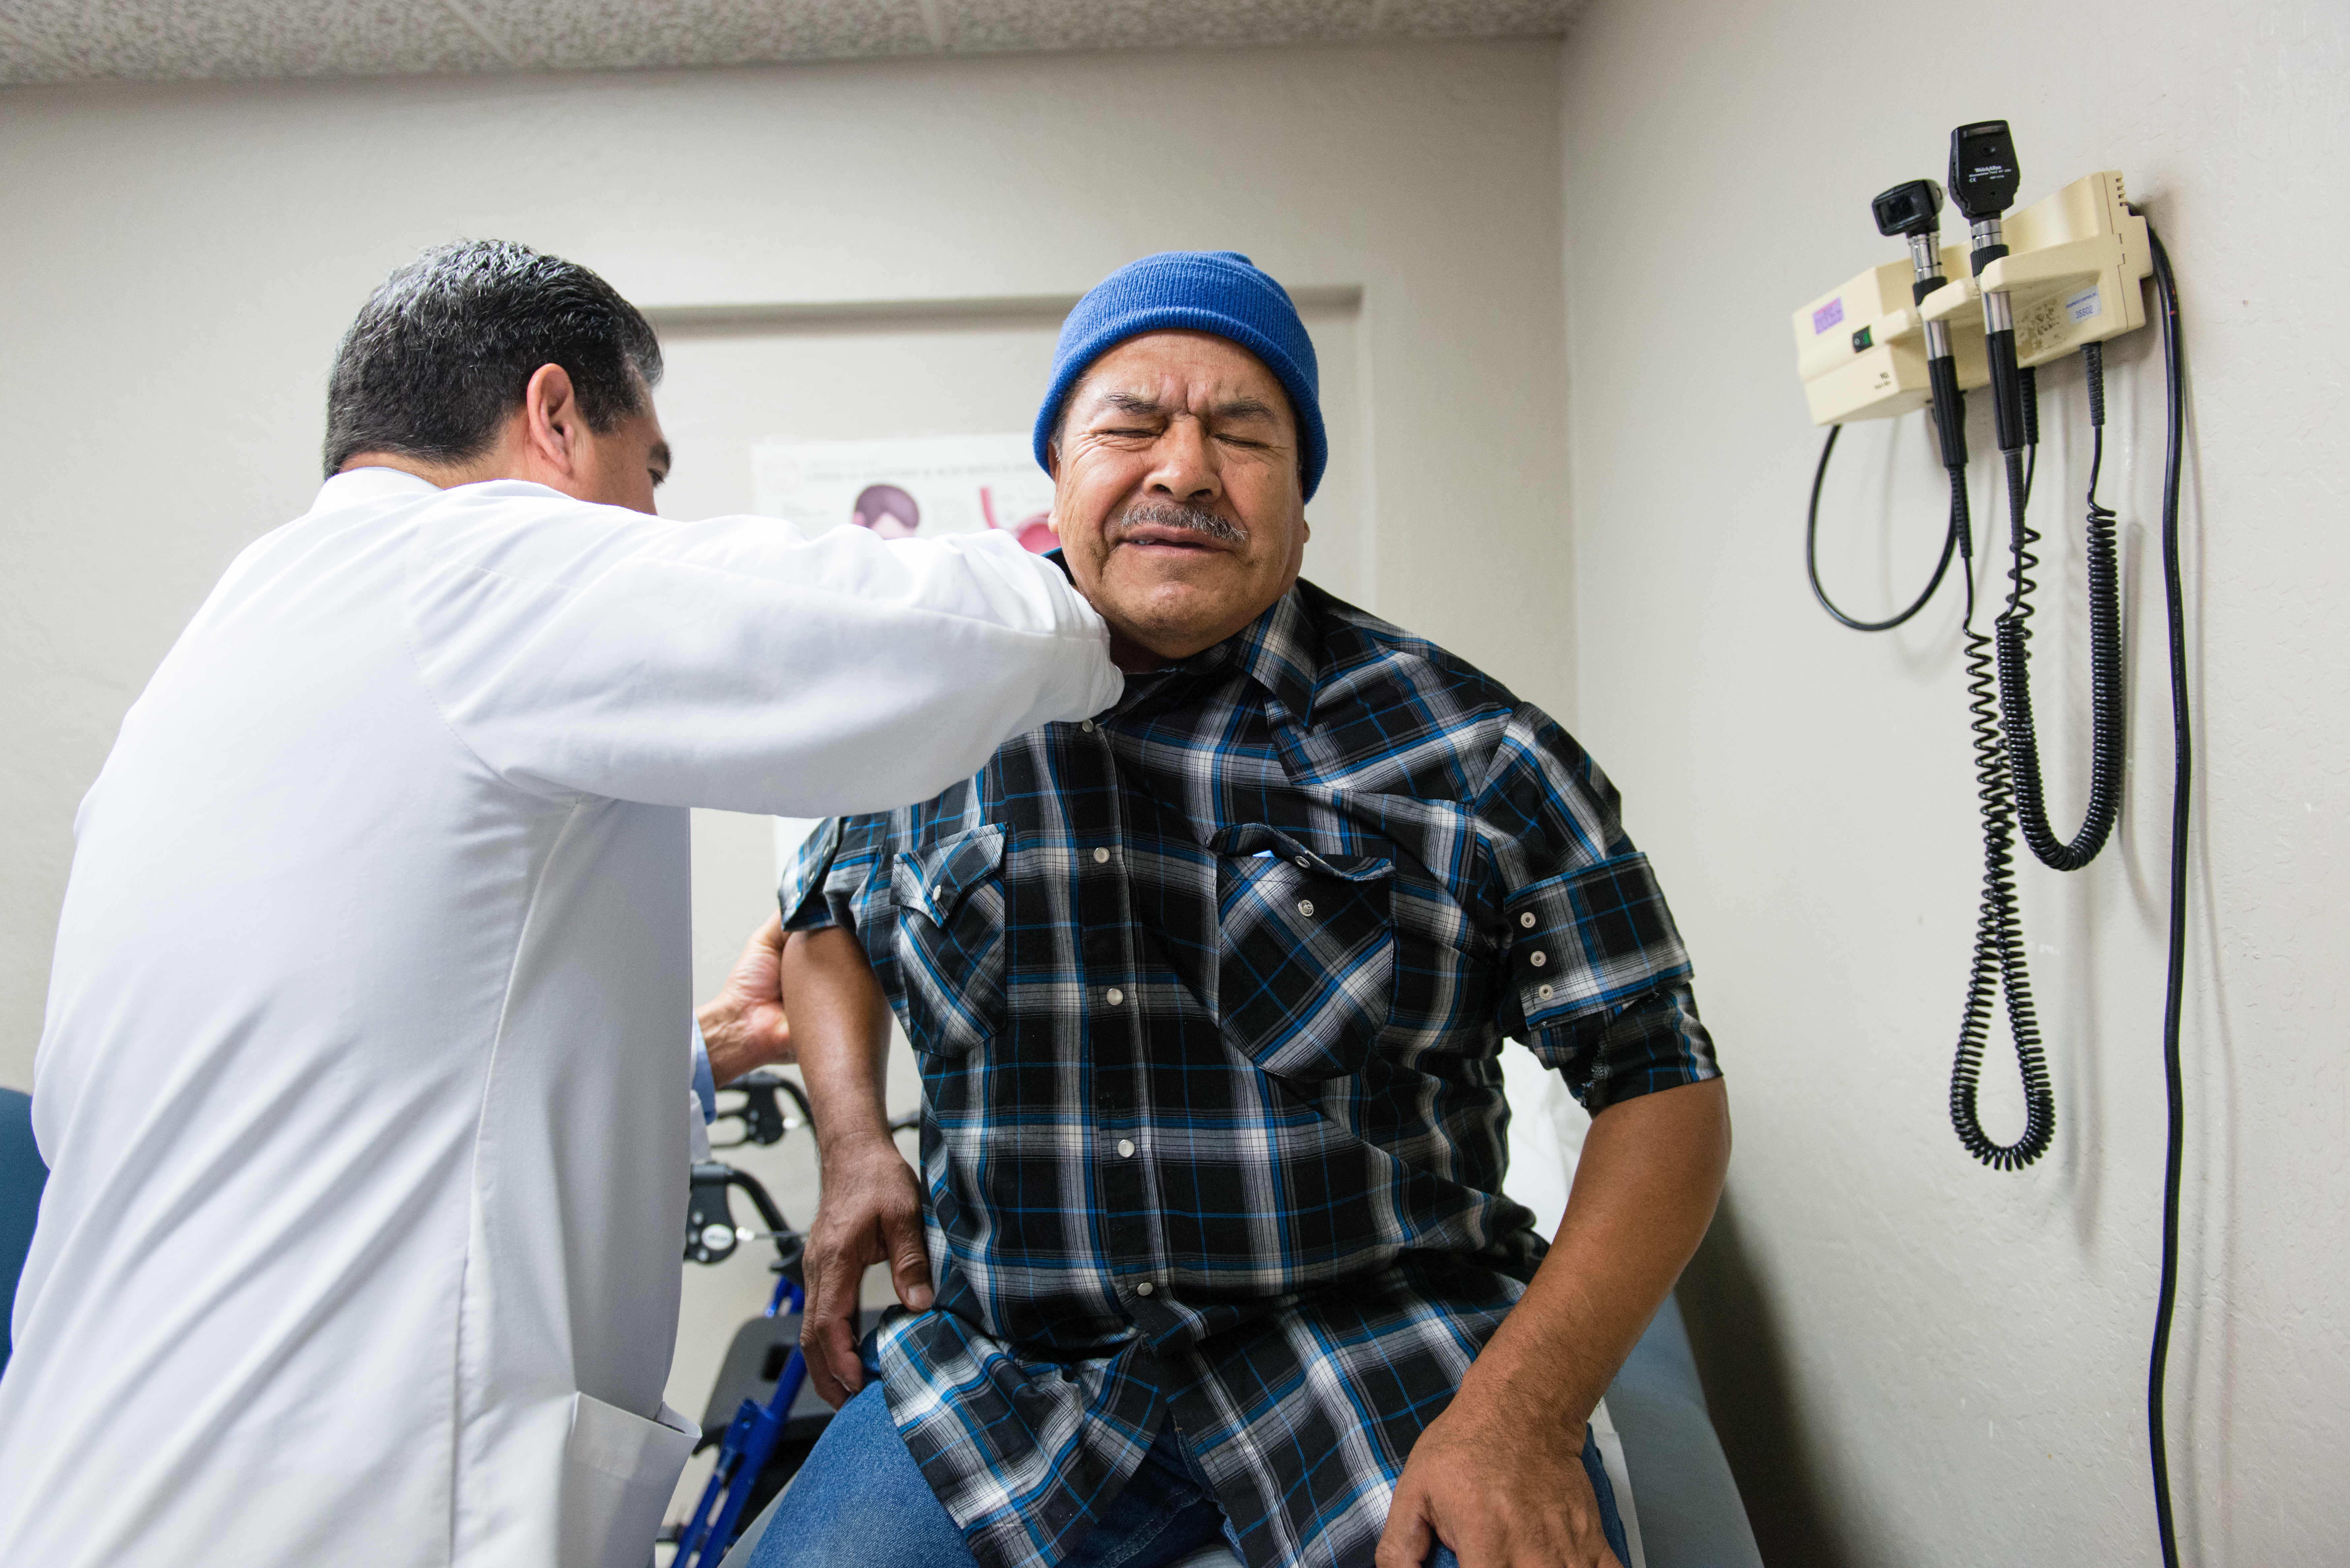 Luis Bautista, an internist at Bautista Medical Center in Fresno, Calif., examines farm worker Jose Gonzalez on February 8, 2017. Gonzalez says he is not ready to retire and needs his insurance to stay healthy. (Heidi de Marco/KHN)